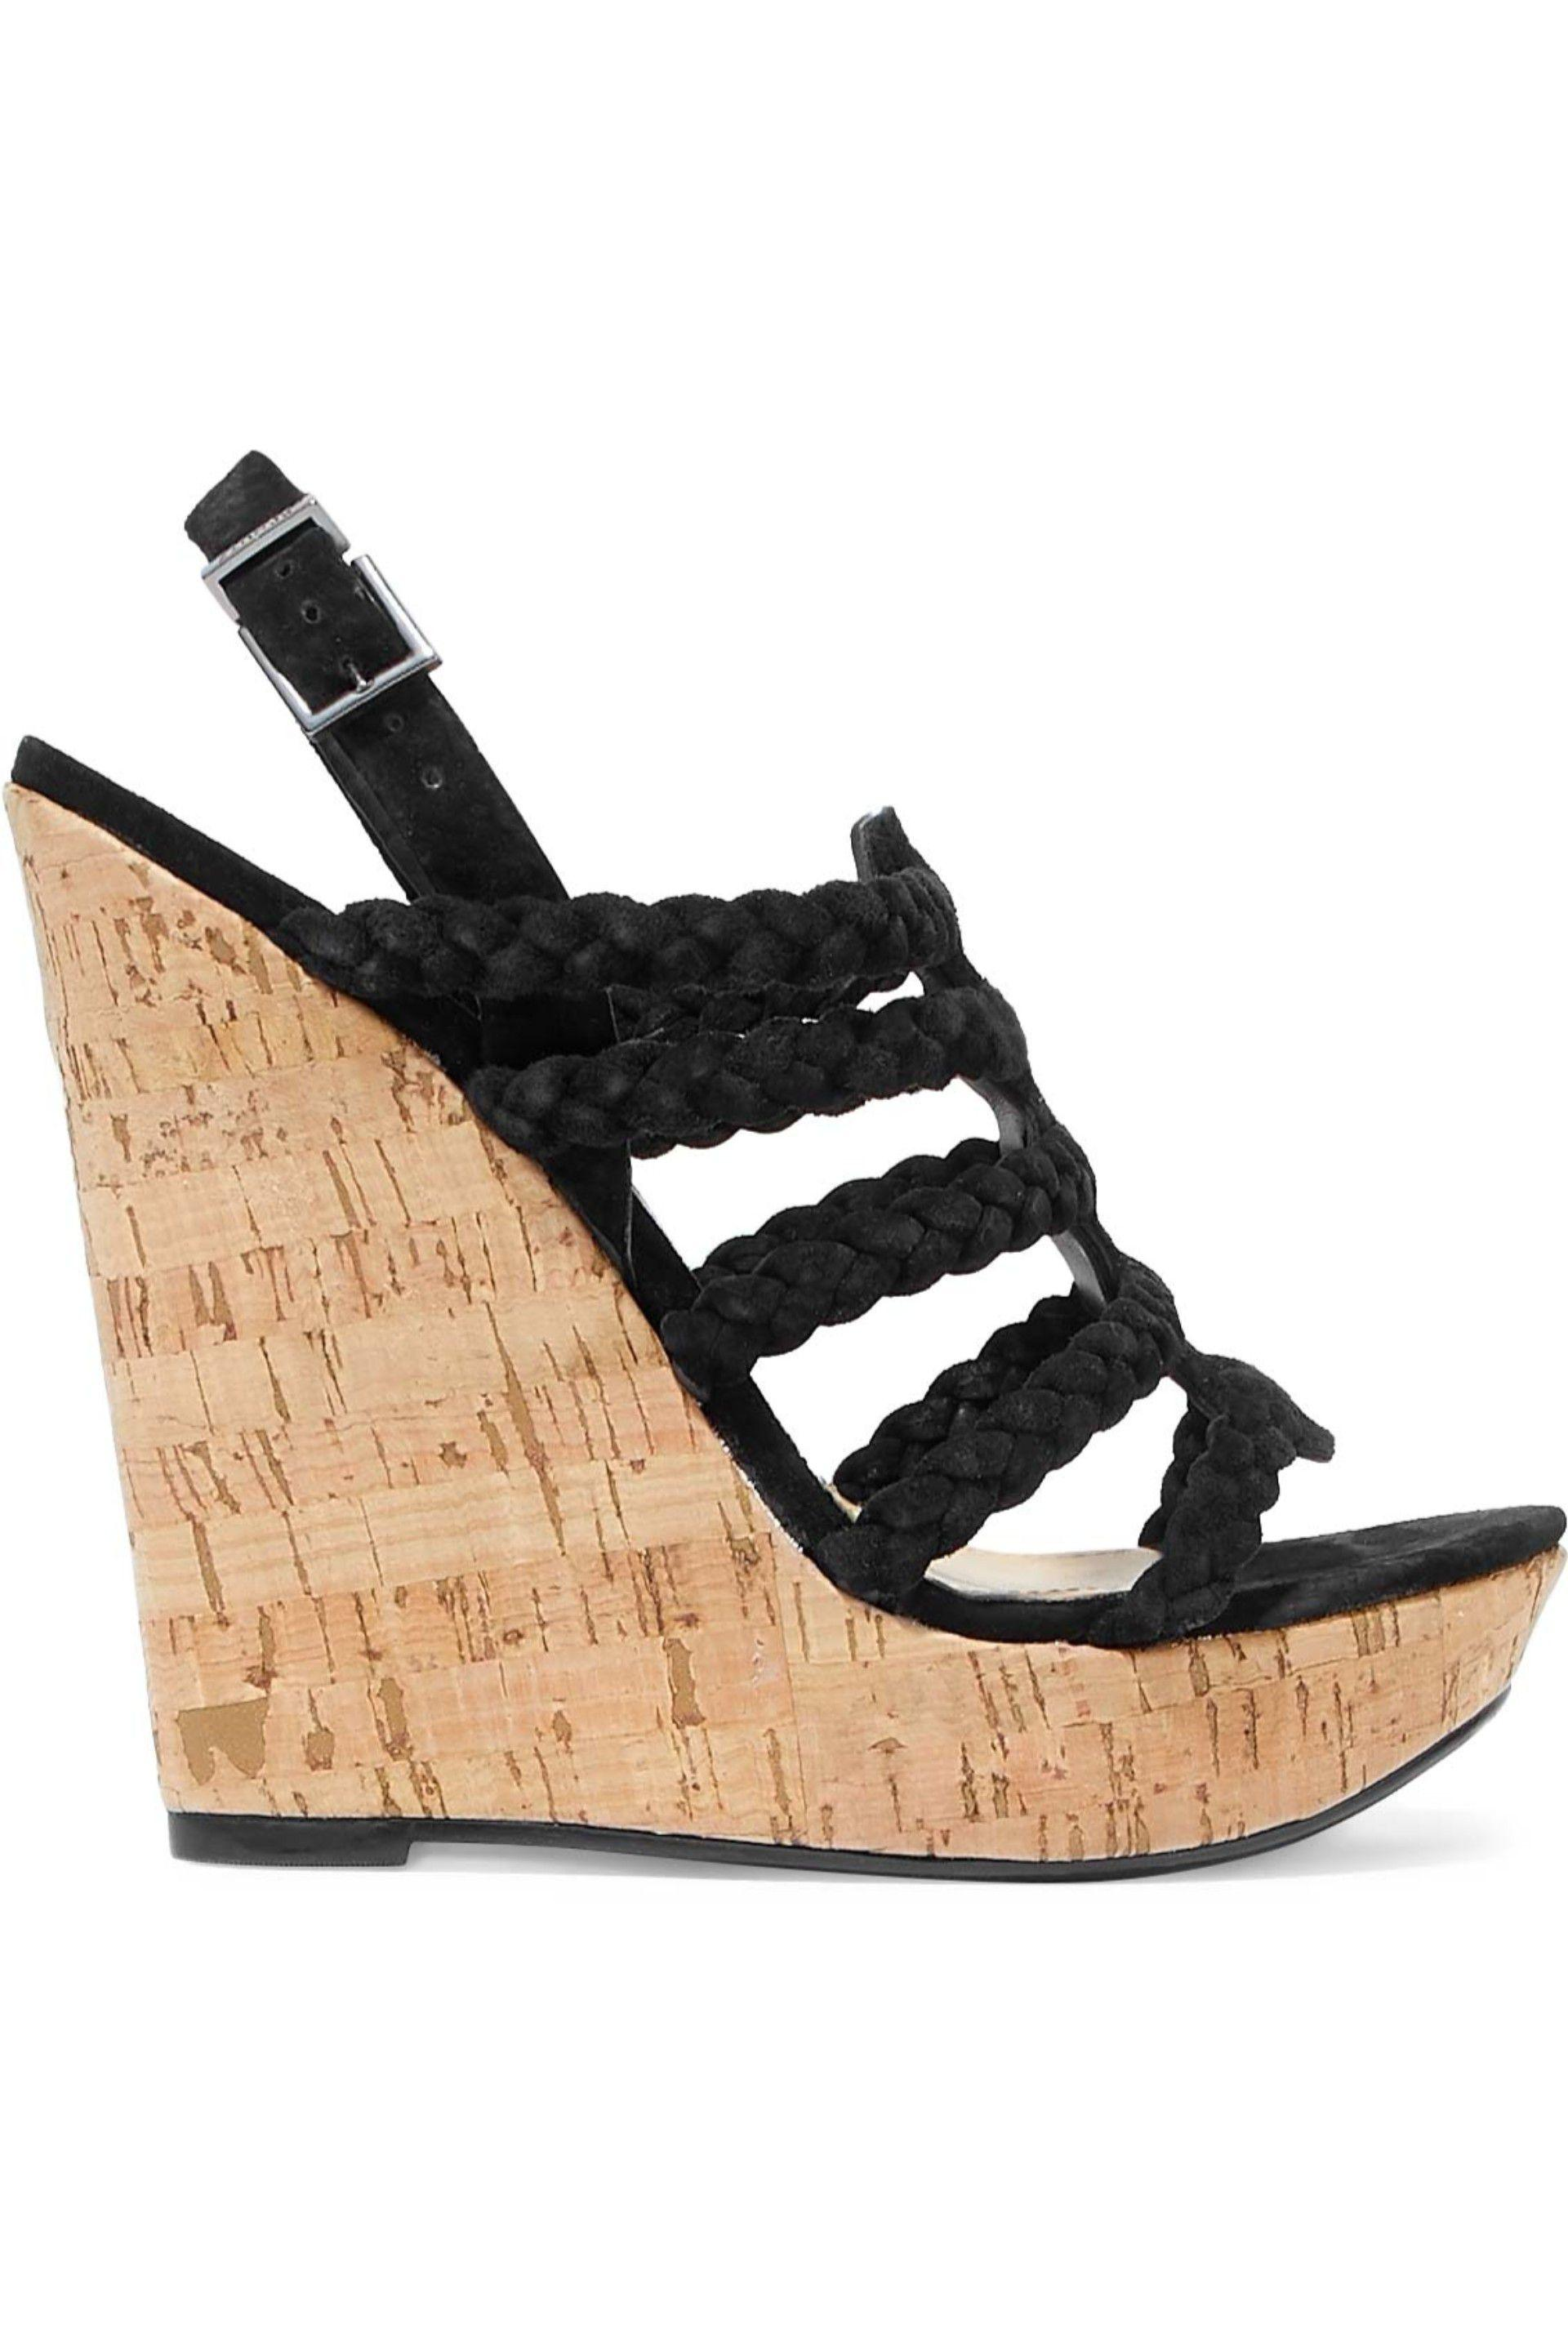 b9a0ab1bb Lyst - Schutz Woman Braided Faux Suede And Cork Wedge Sandals Black ...